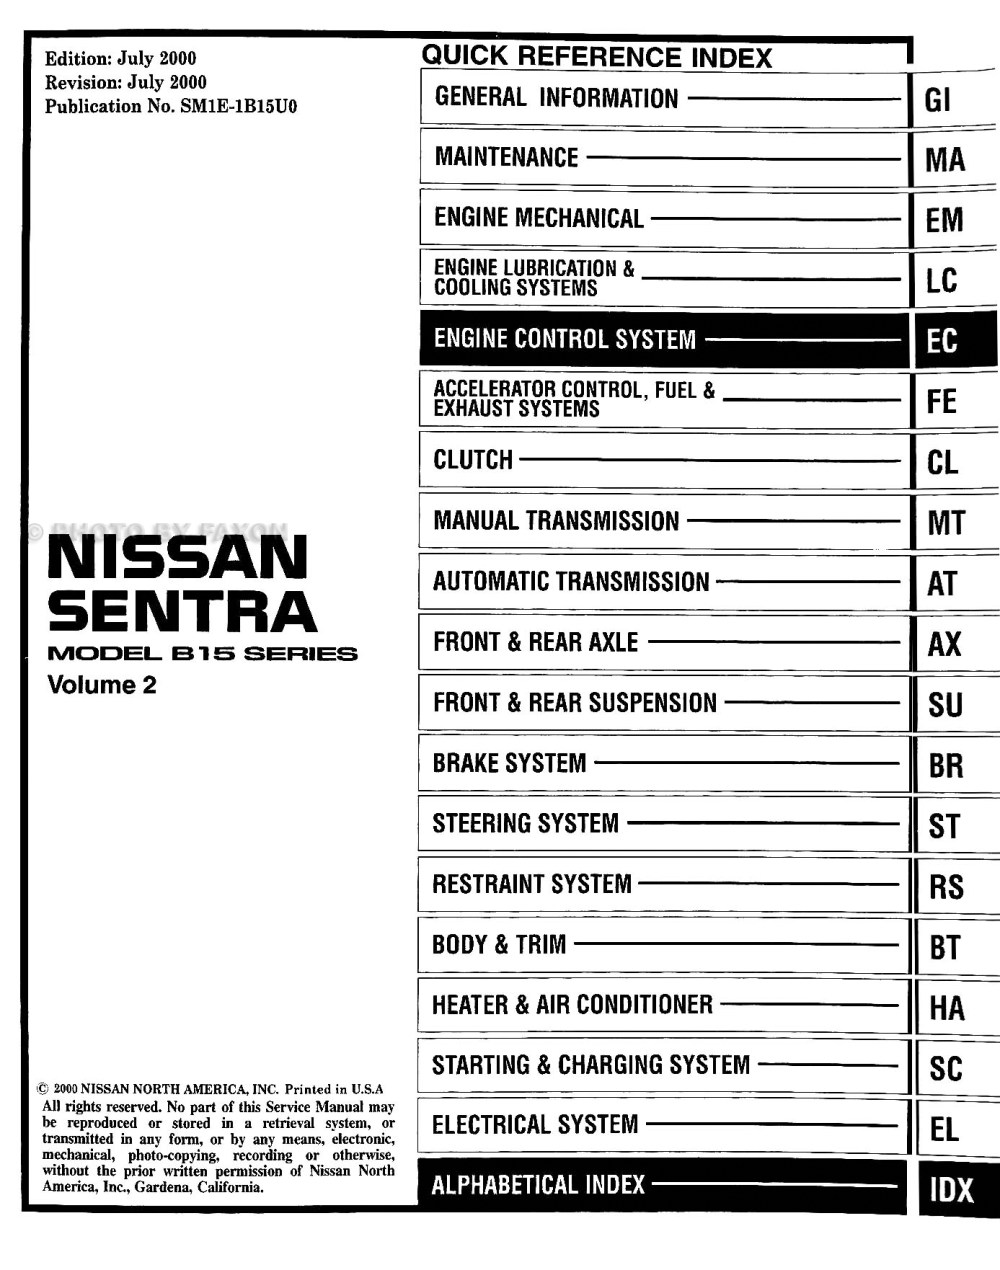 medium resolution of 2013 sentra wiring diagram wiring library rh 5 pirmasens land eu 2012 nissan sentra wiring diagram